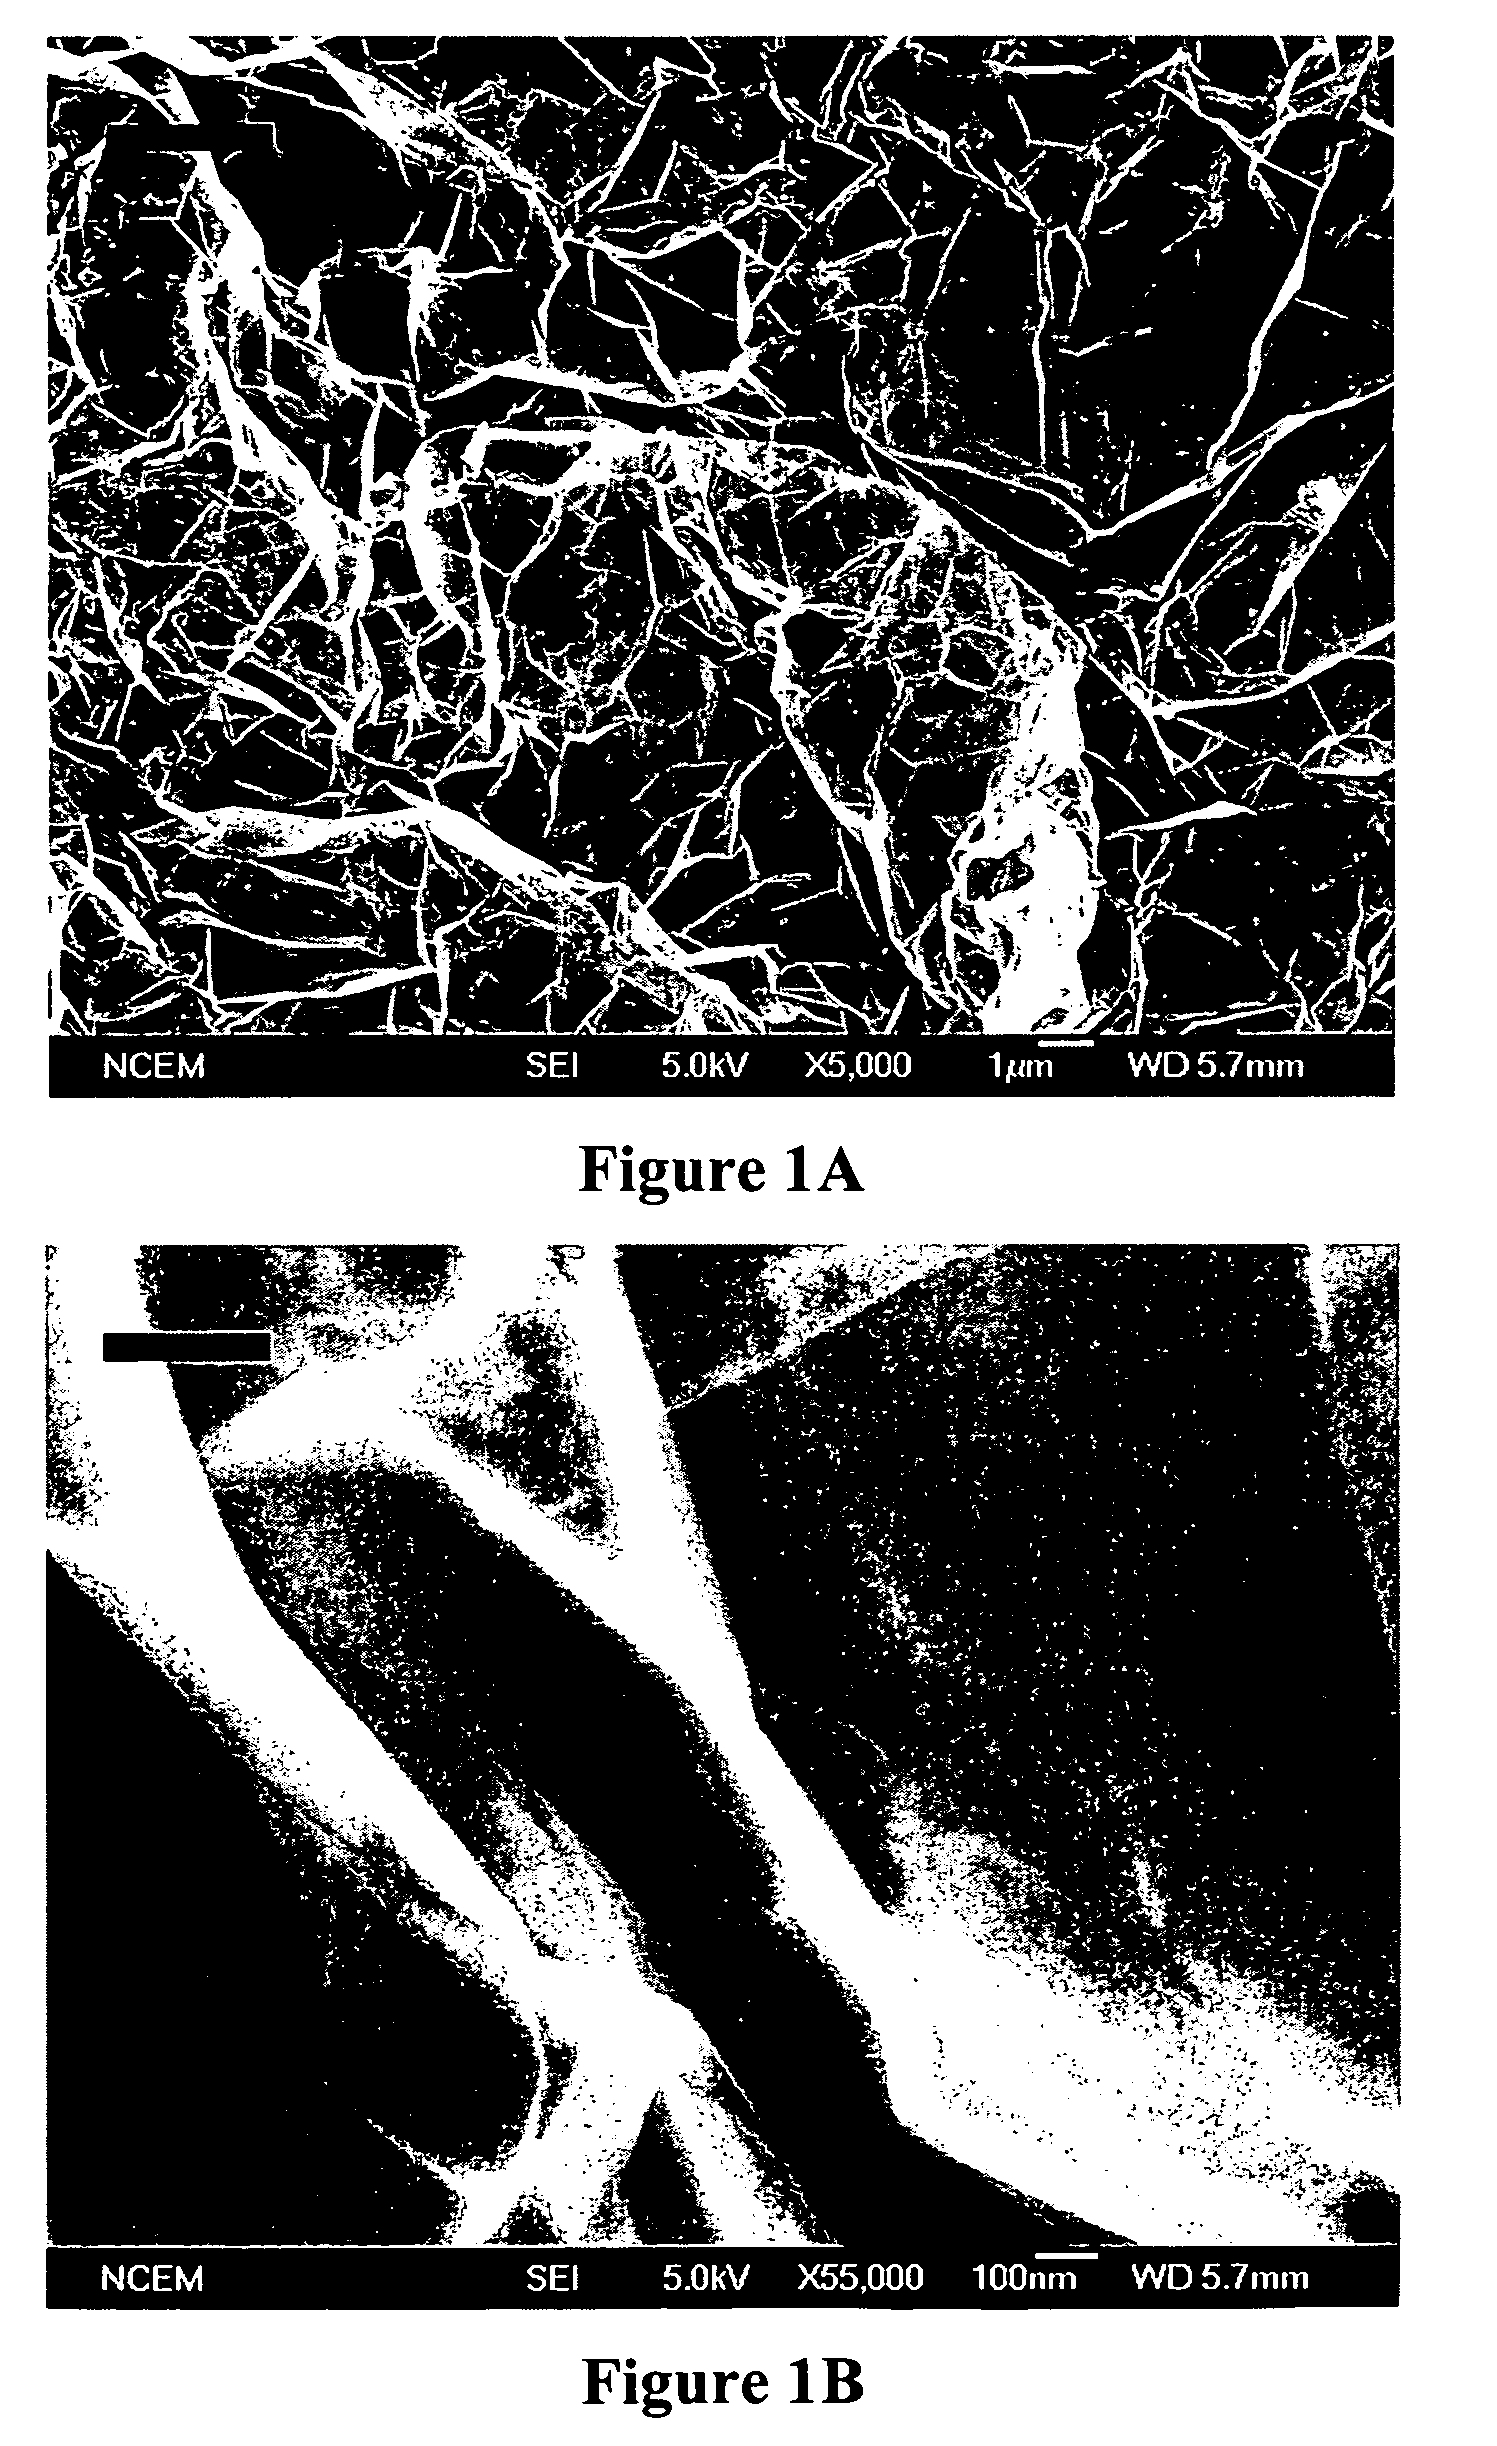 carbon nanostructures The properties and application of carbon nanostructures 177 polyvinyldifluoride and polypropylene, which significantly enhanced its attractiveness of.